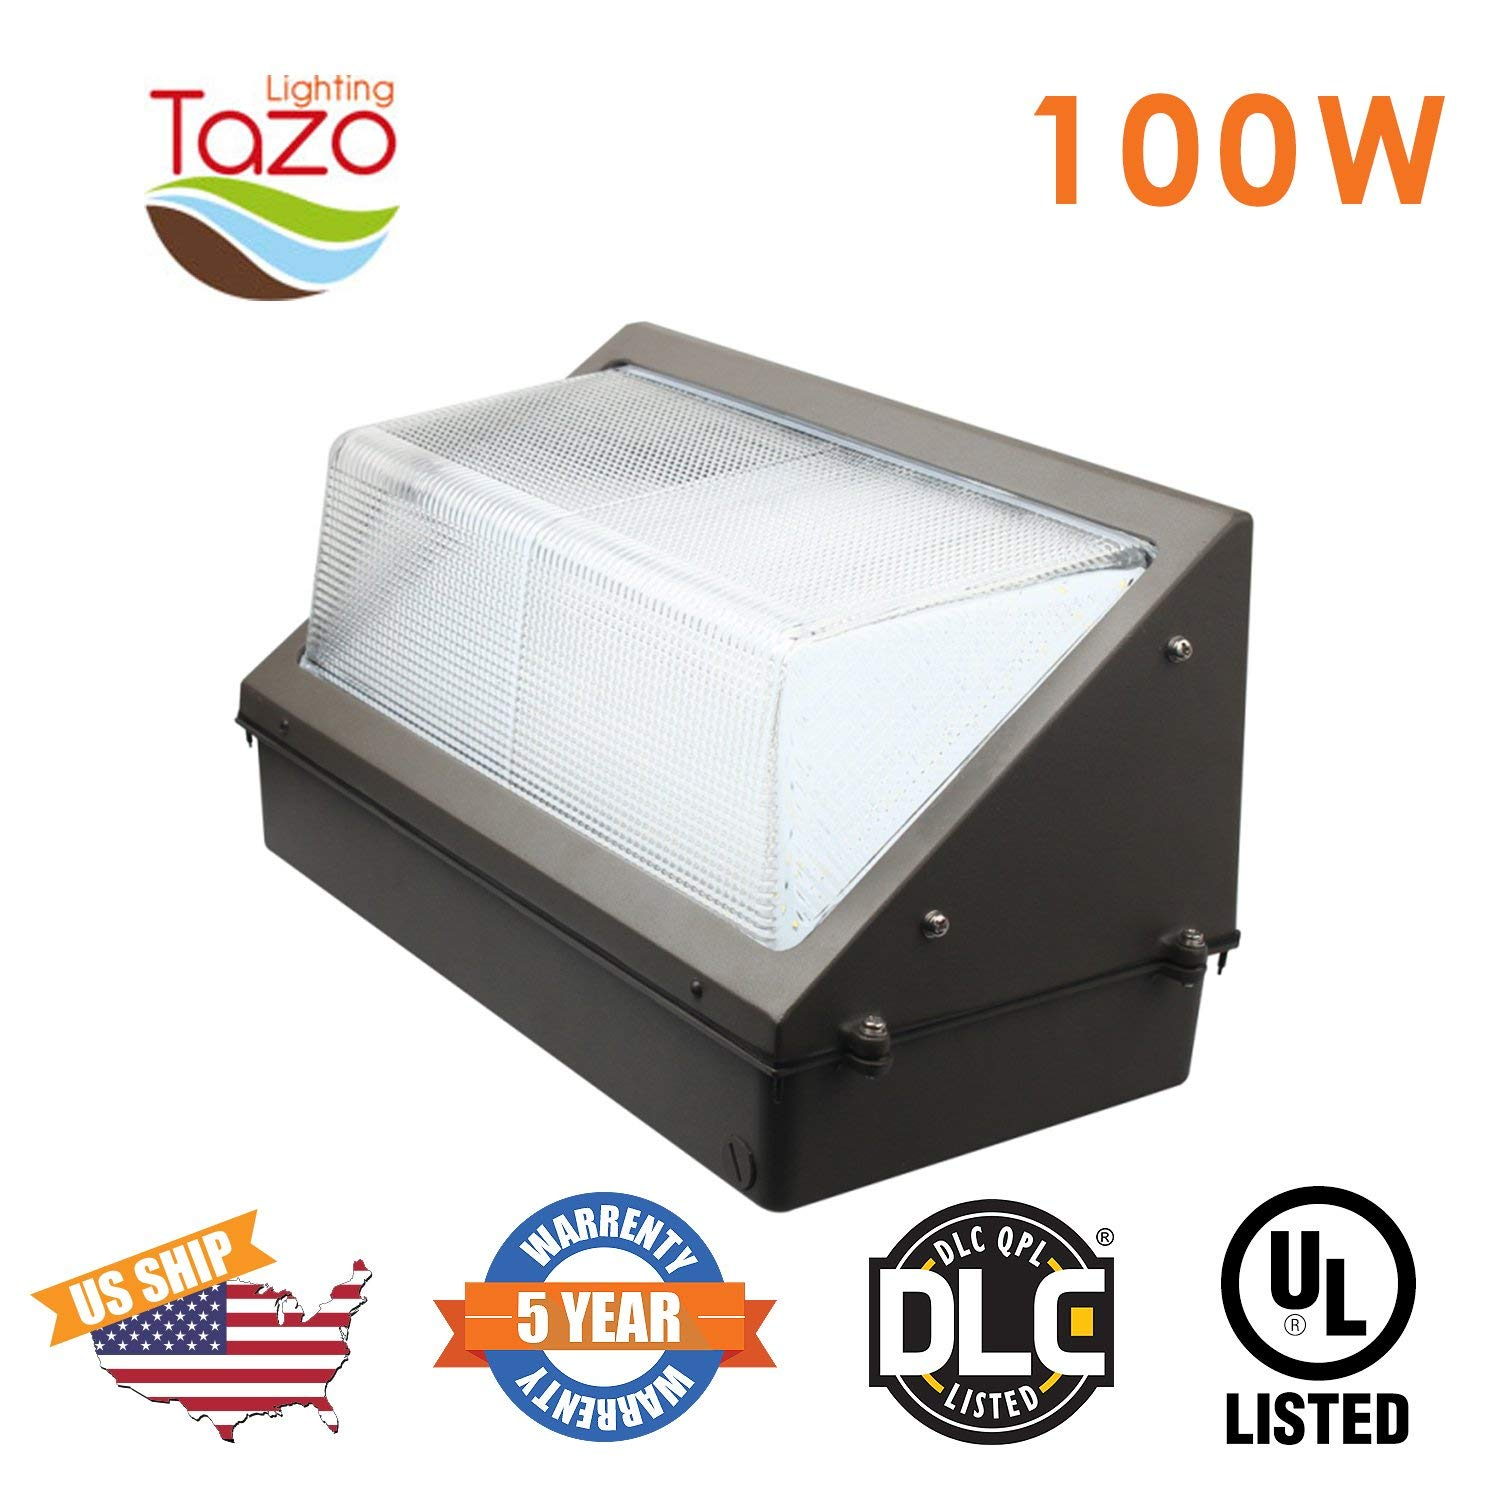 TAZO LIGHTING 100W LED Wall Pack Light, 2700-7000K LED Security Lighting Fixture, 8000-9000 Lumens(200-300W MH/HPS Equivalent), IP65 Outdoor Industrial and Commercial Aare Lighting (UL-Listed)